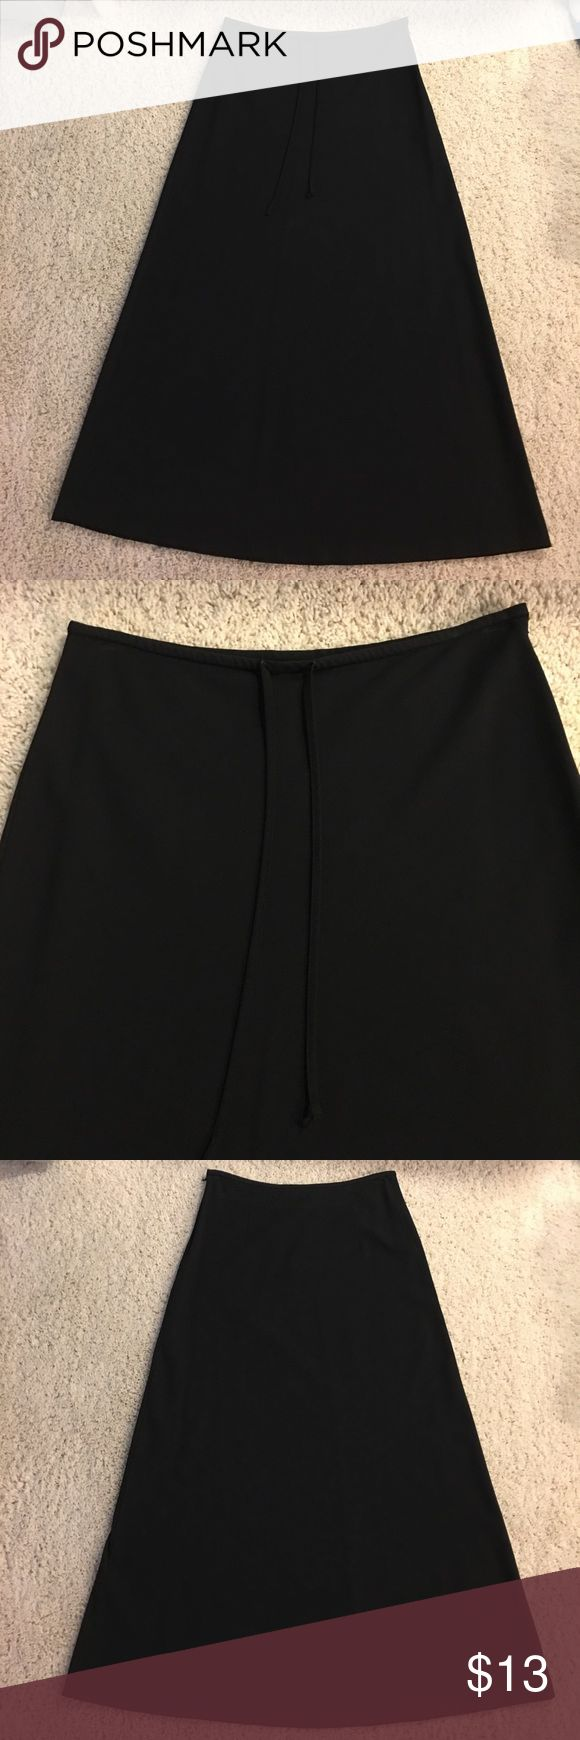 """👩🏼Old Navy Maxi Skirt. Size 1. ▫️49% Rayon, 48% Polyester, 3% Lycra Spandex ▫️Approximate measurements: Waist laying flat is 14"""". Length is 35"""". ▫️Excellent condition. Old Navy Skirts Maxi"""